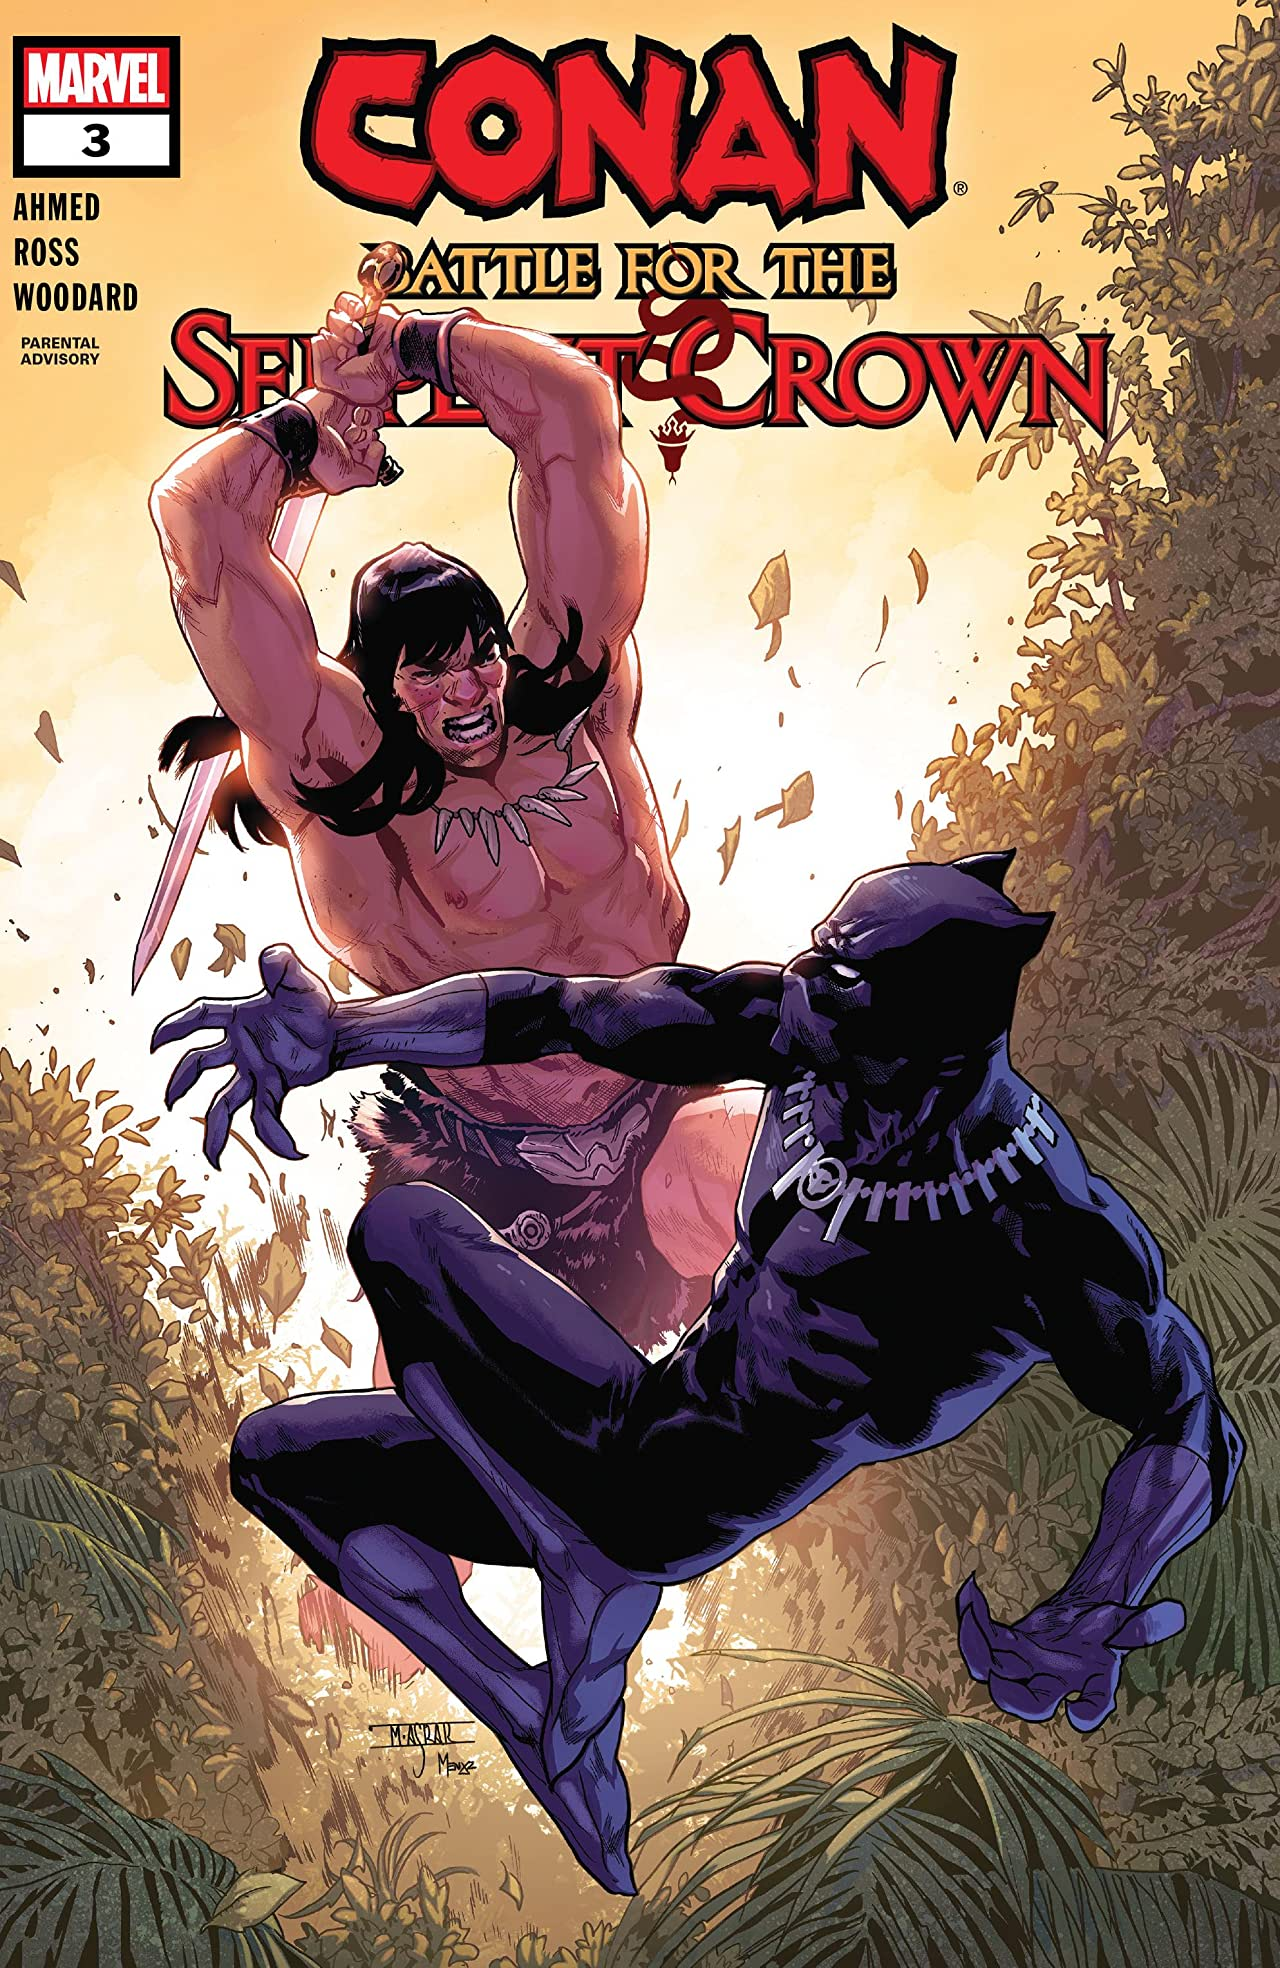 Conan: Battle for the Serpent Crown (2020) #3